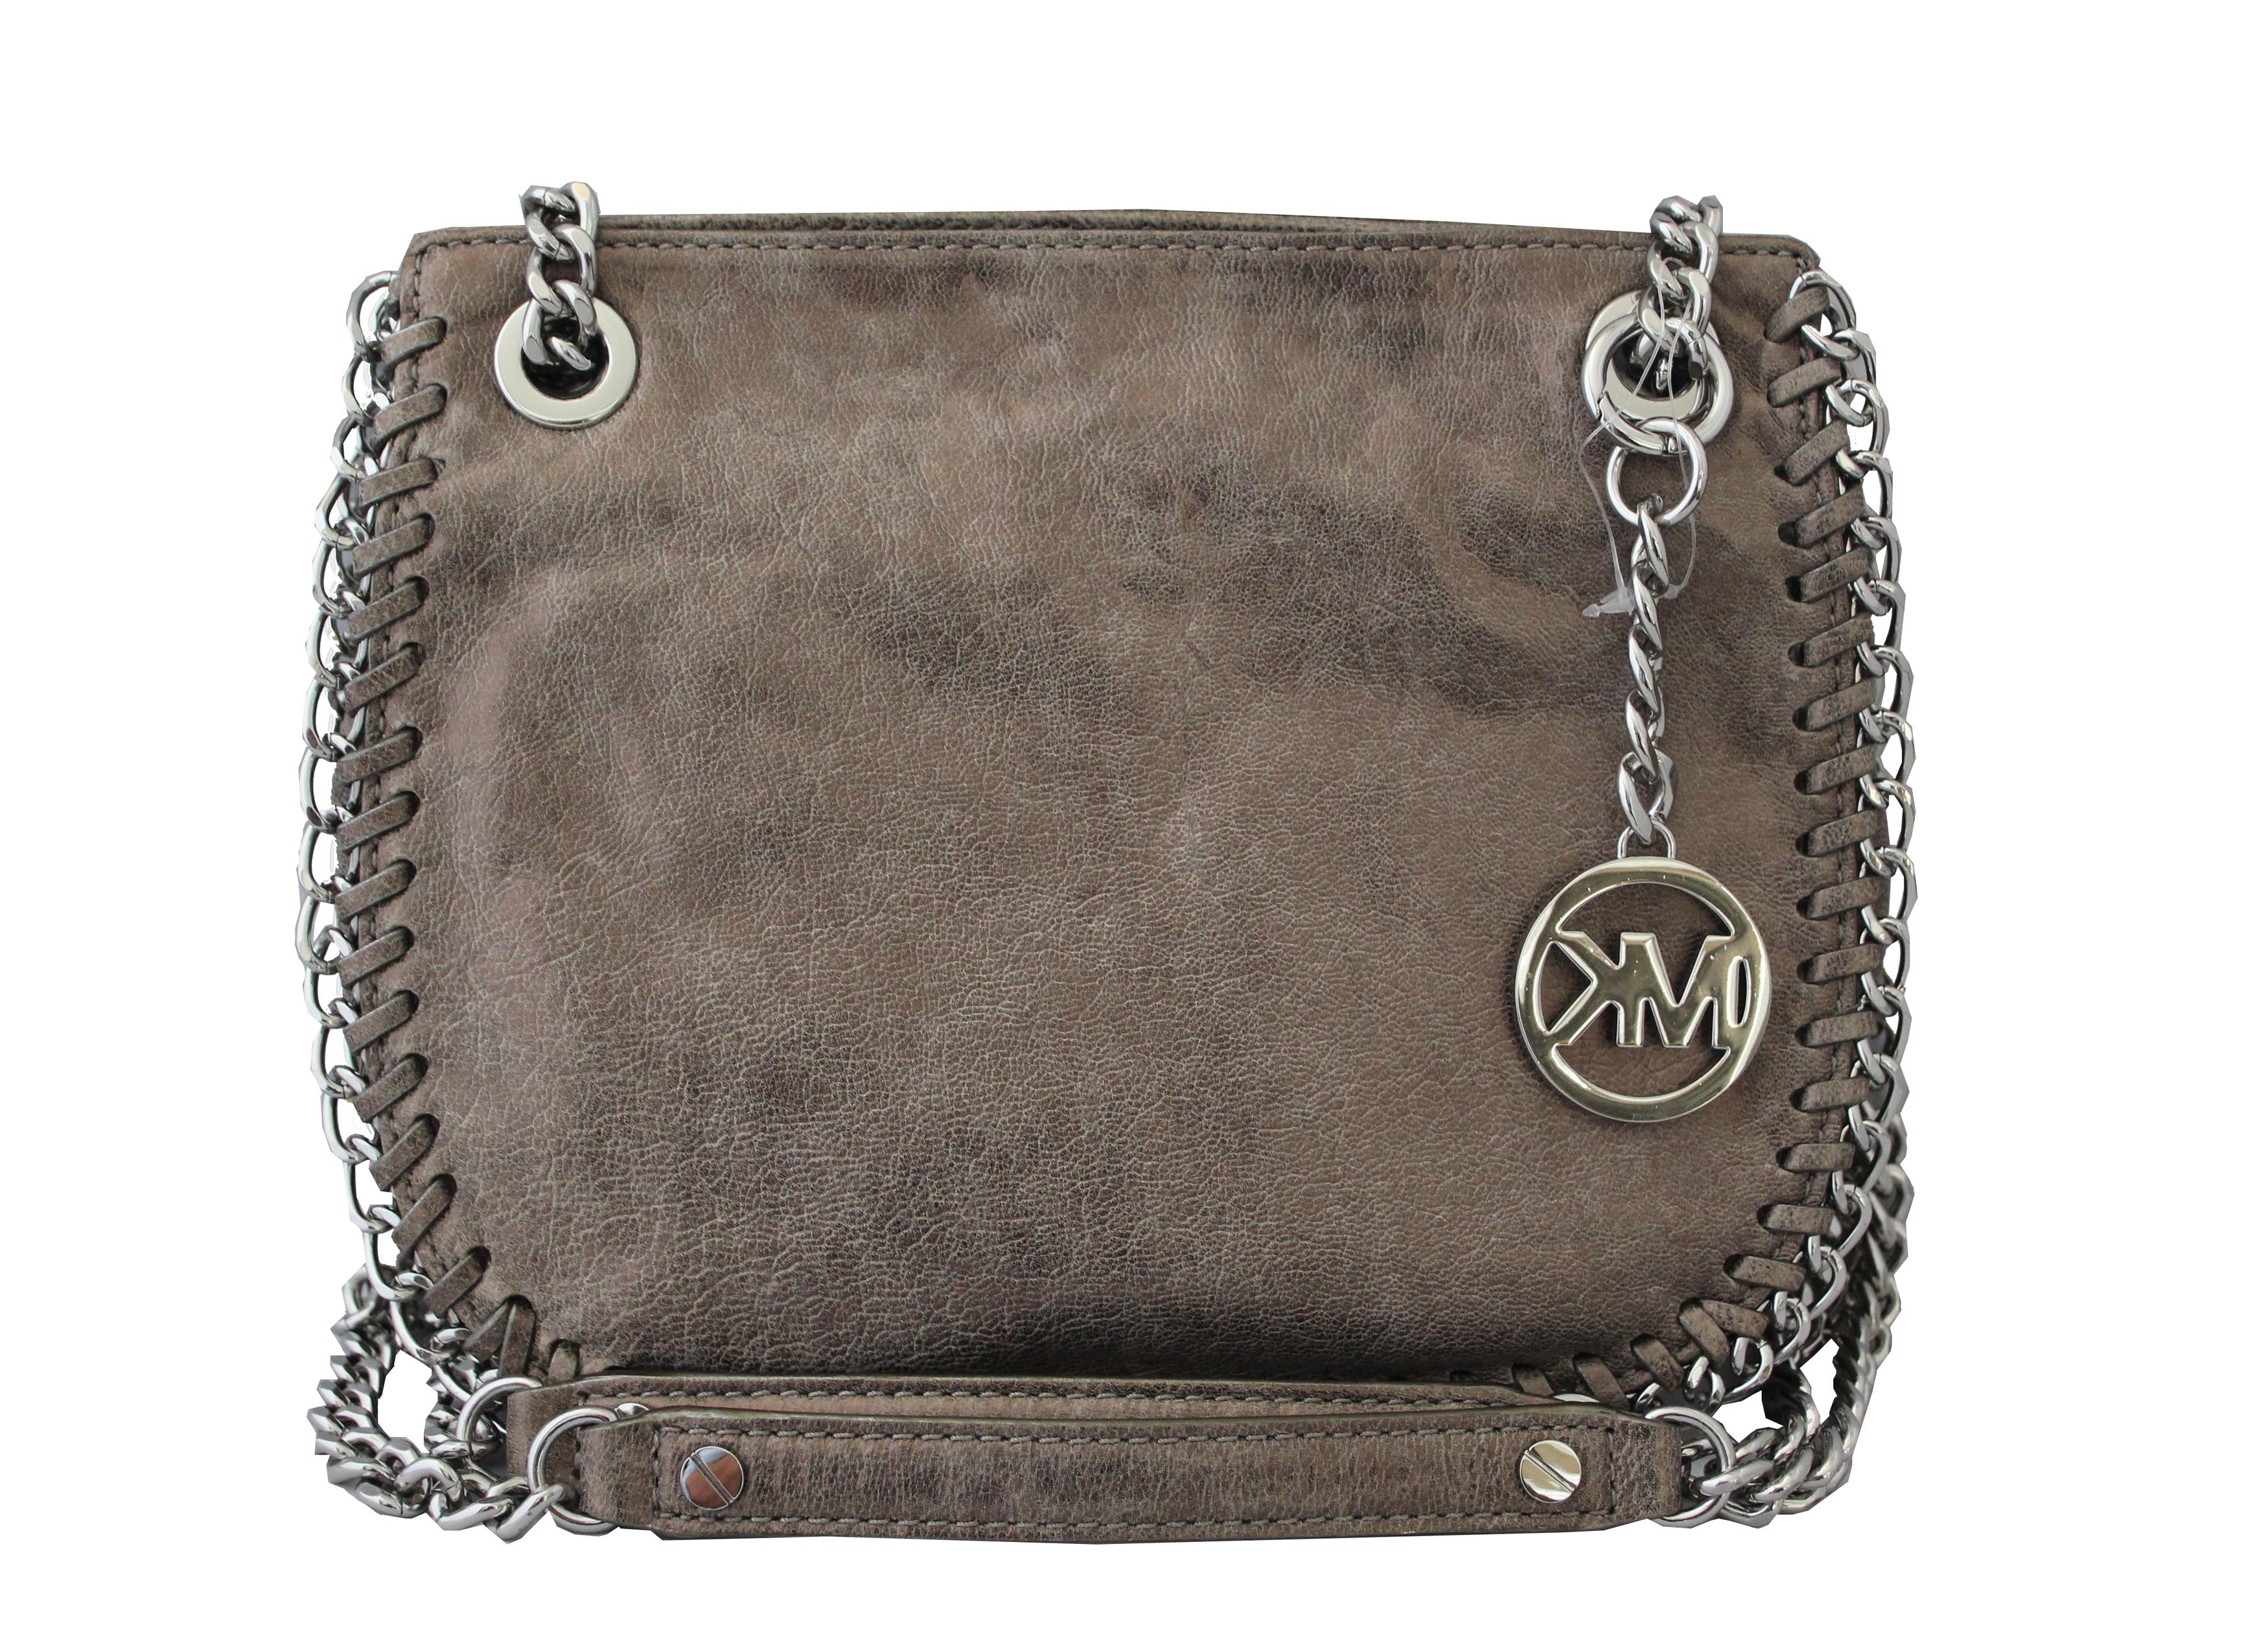 c8a1bce84c853c germany michael kors leather crossbody nickel messenger bag 0eeef 1efc0